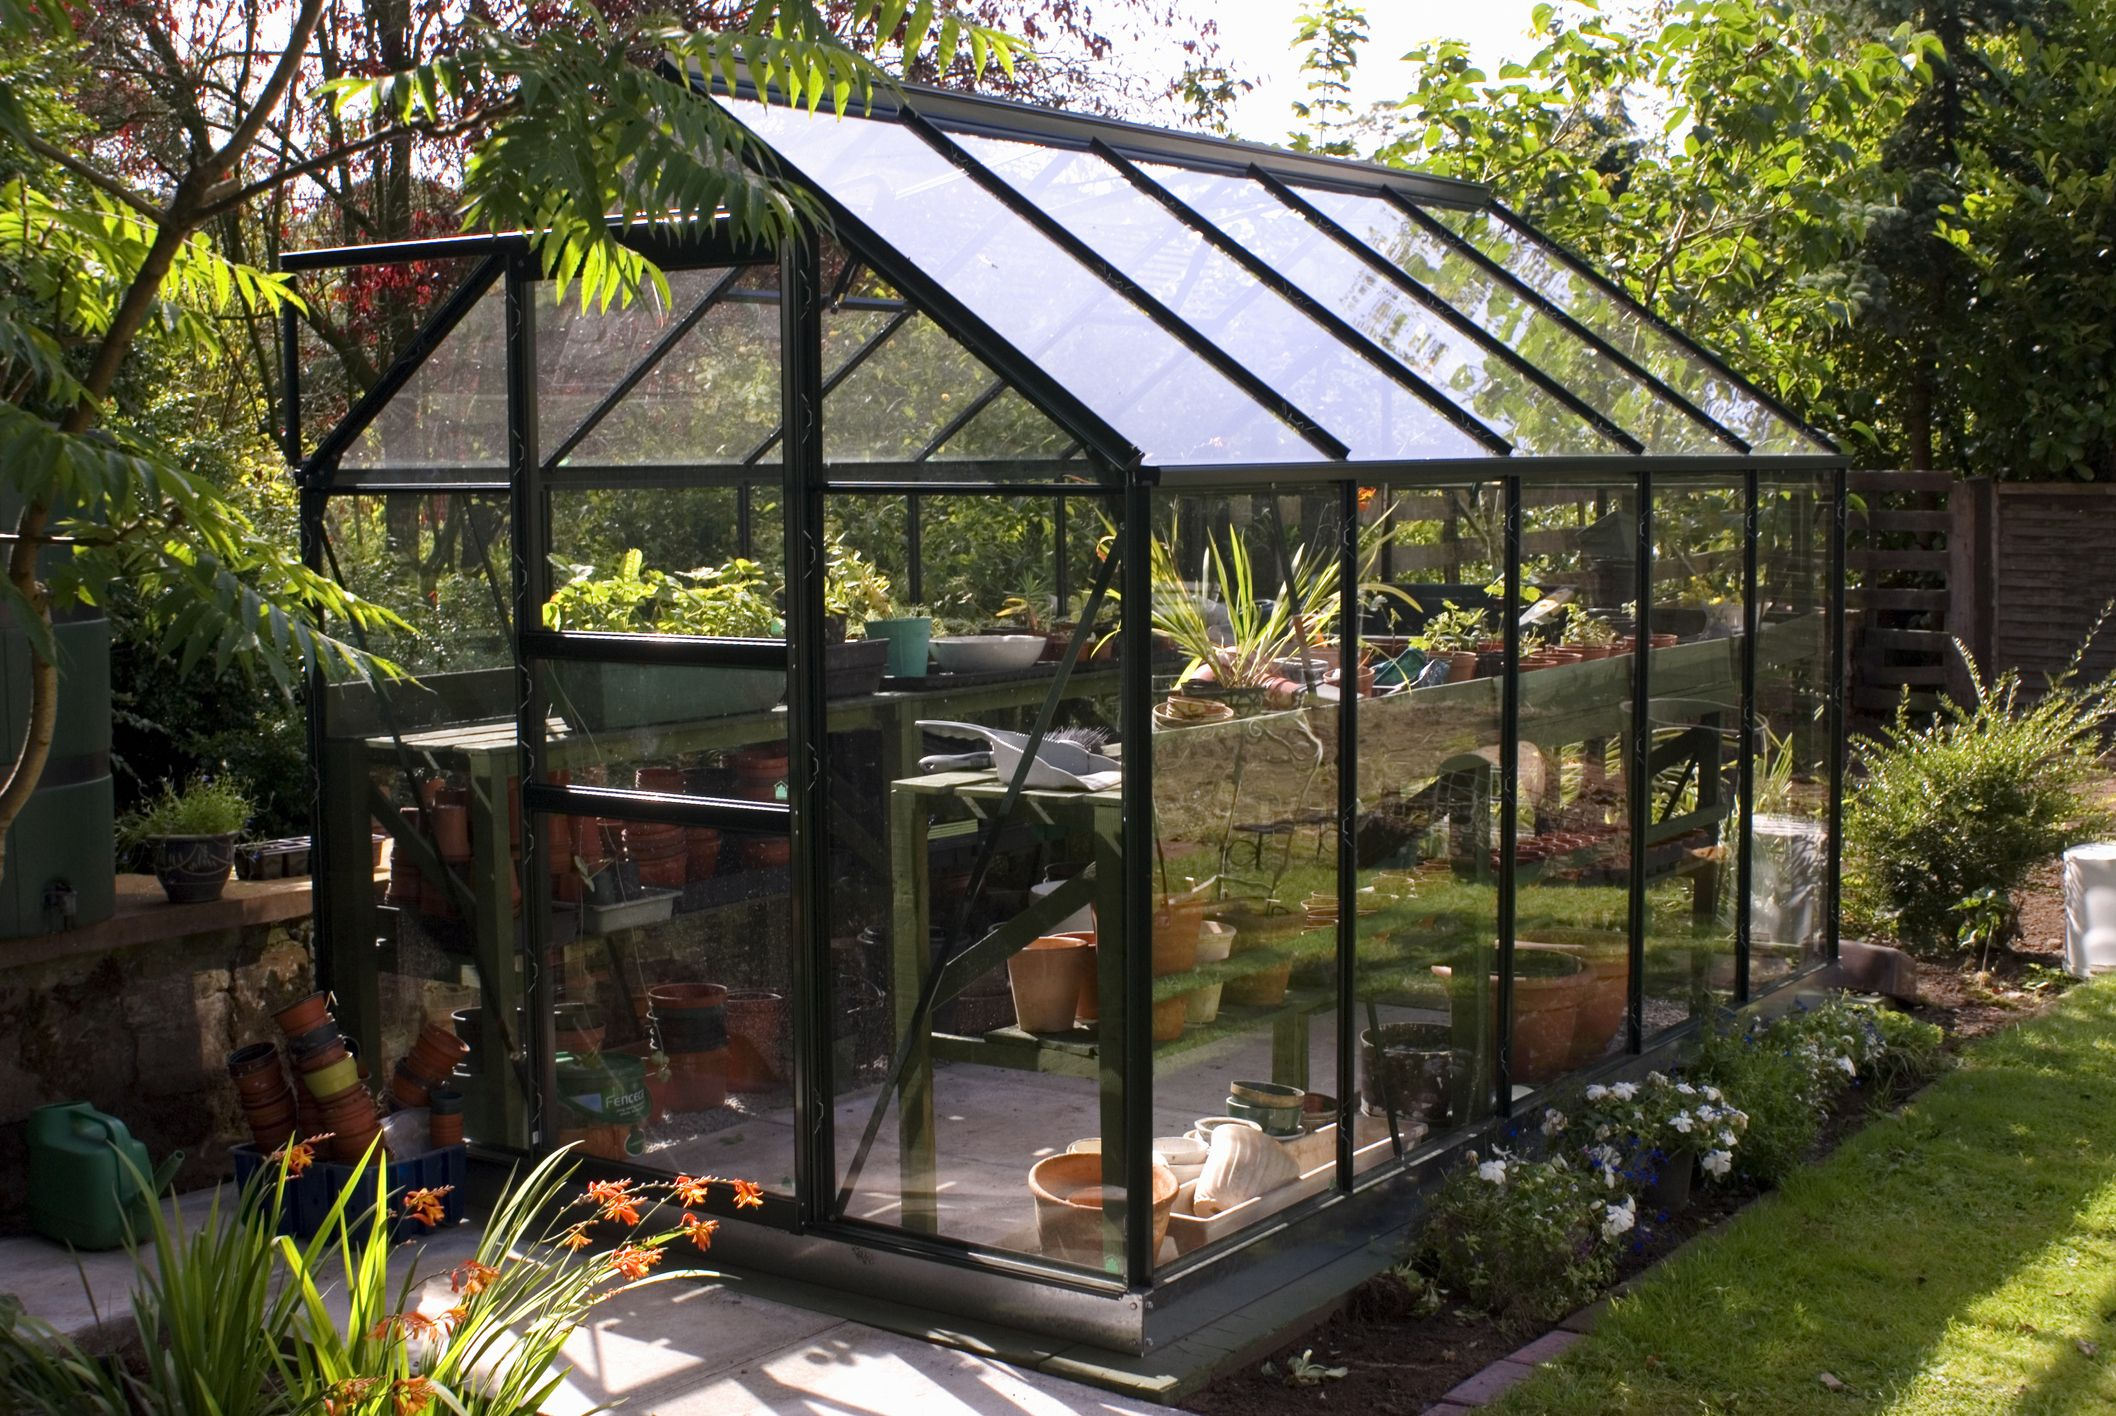 5 things to consider before buying a greenhouse